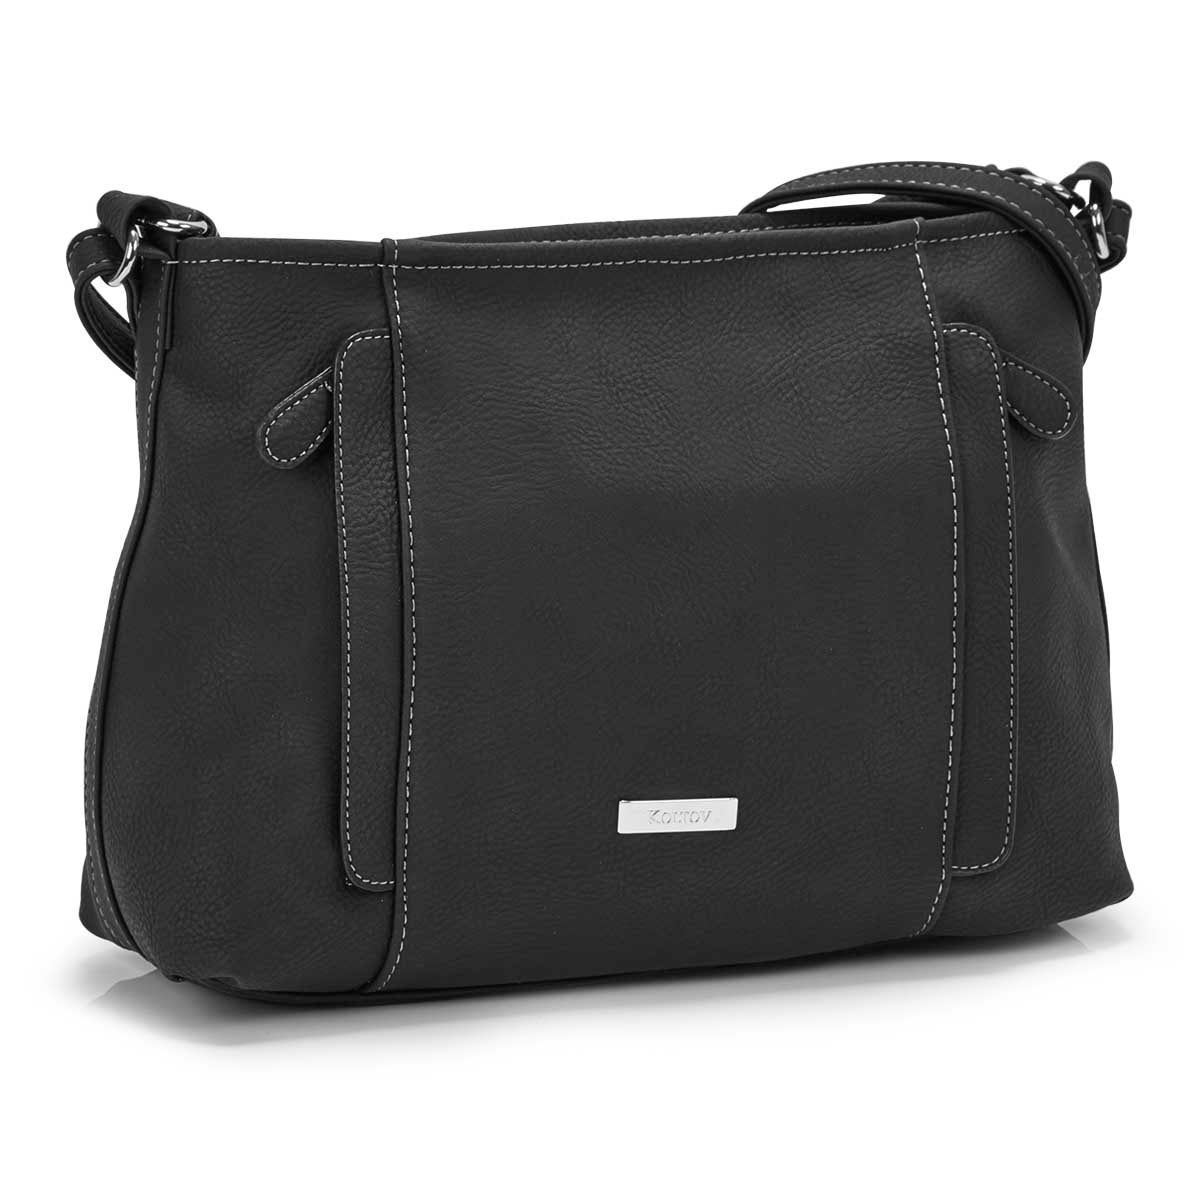 Women's TRENT black tote bag